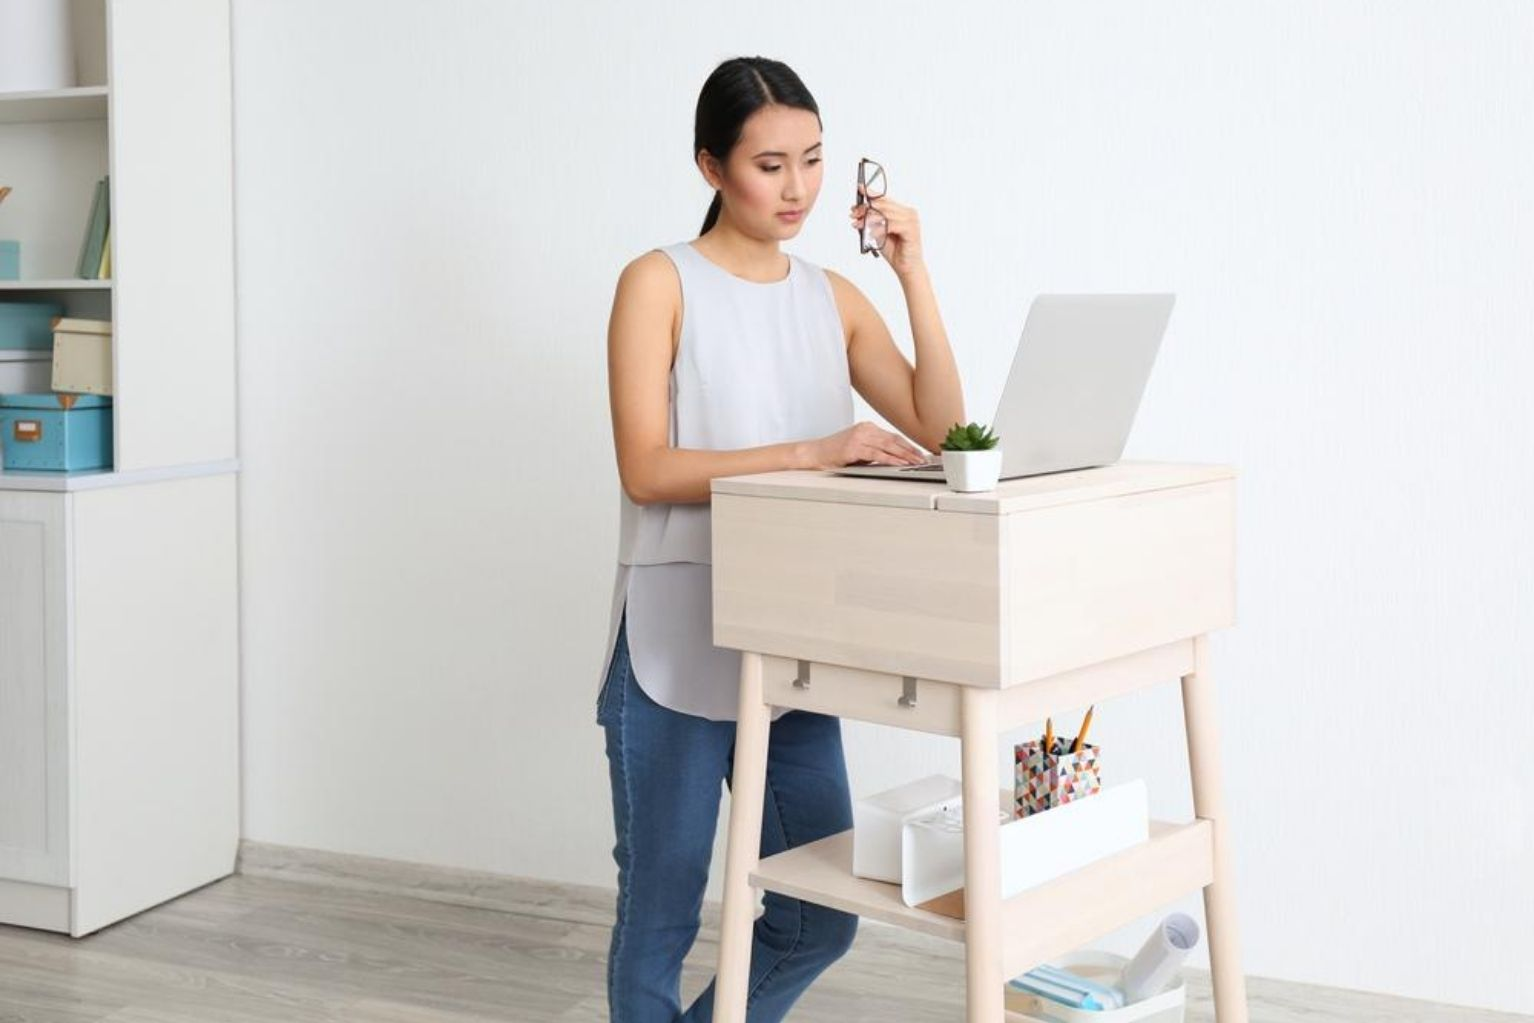 Woman at a stand up desk in her living room at her house working on a laptop